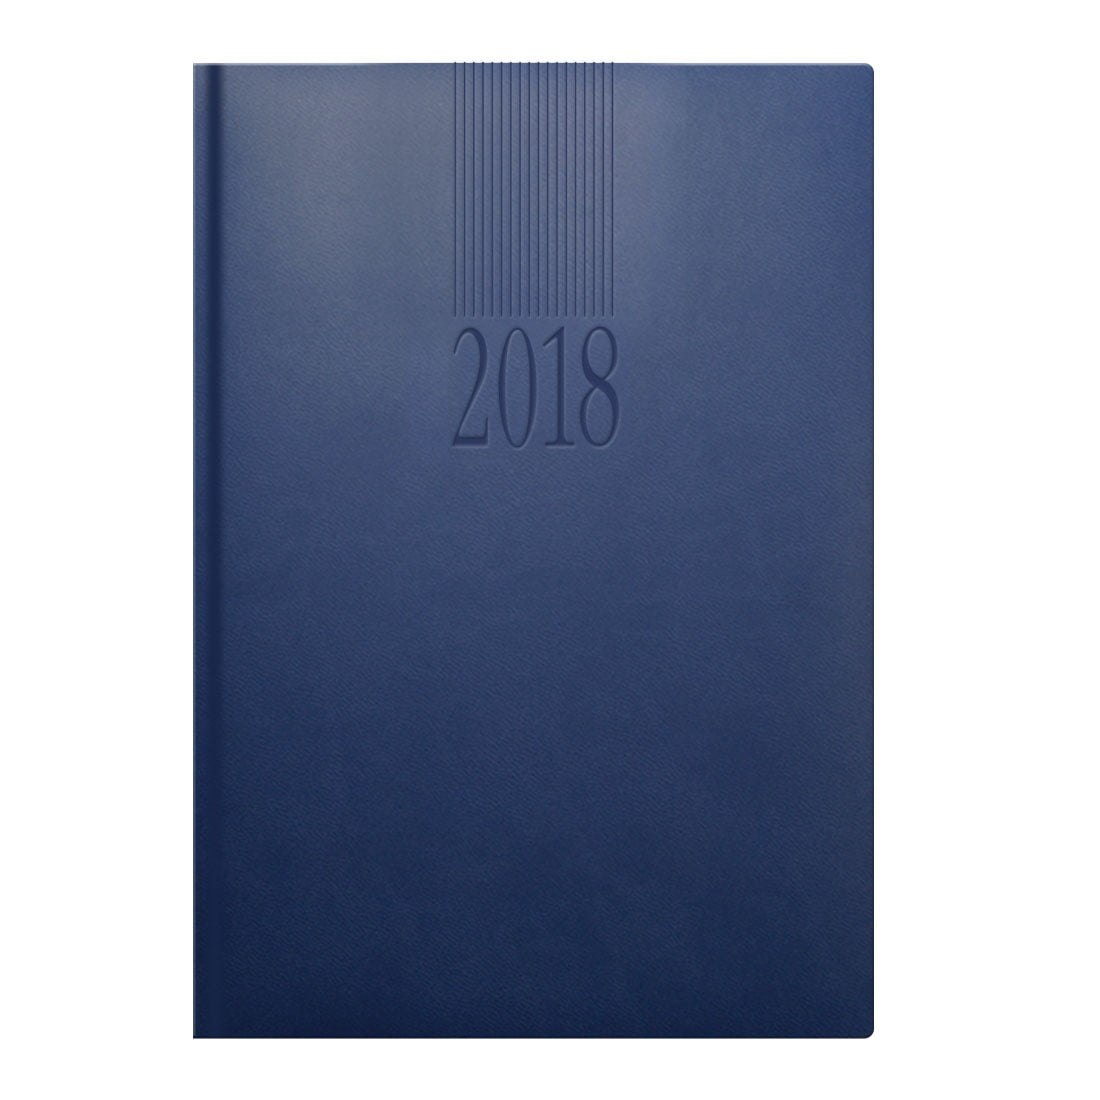 Tuscon A5 daily desk diary in China blue, luxurious padded cover, ribbon marker. Blind embossed with your company logo.